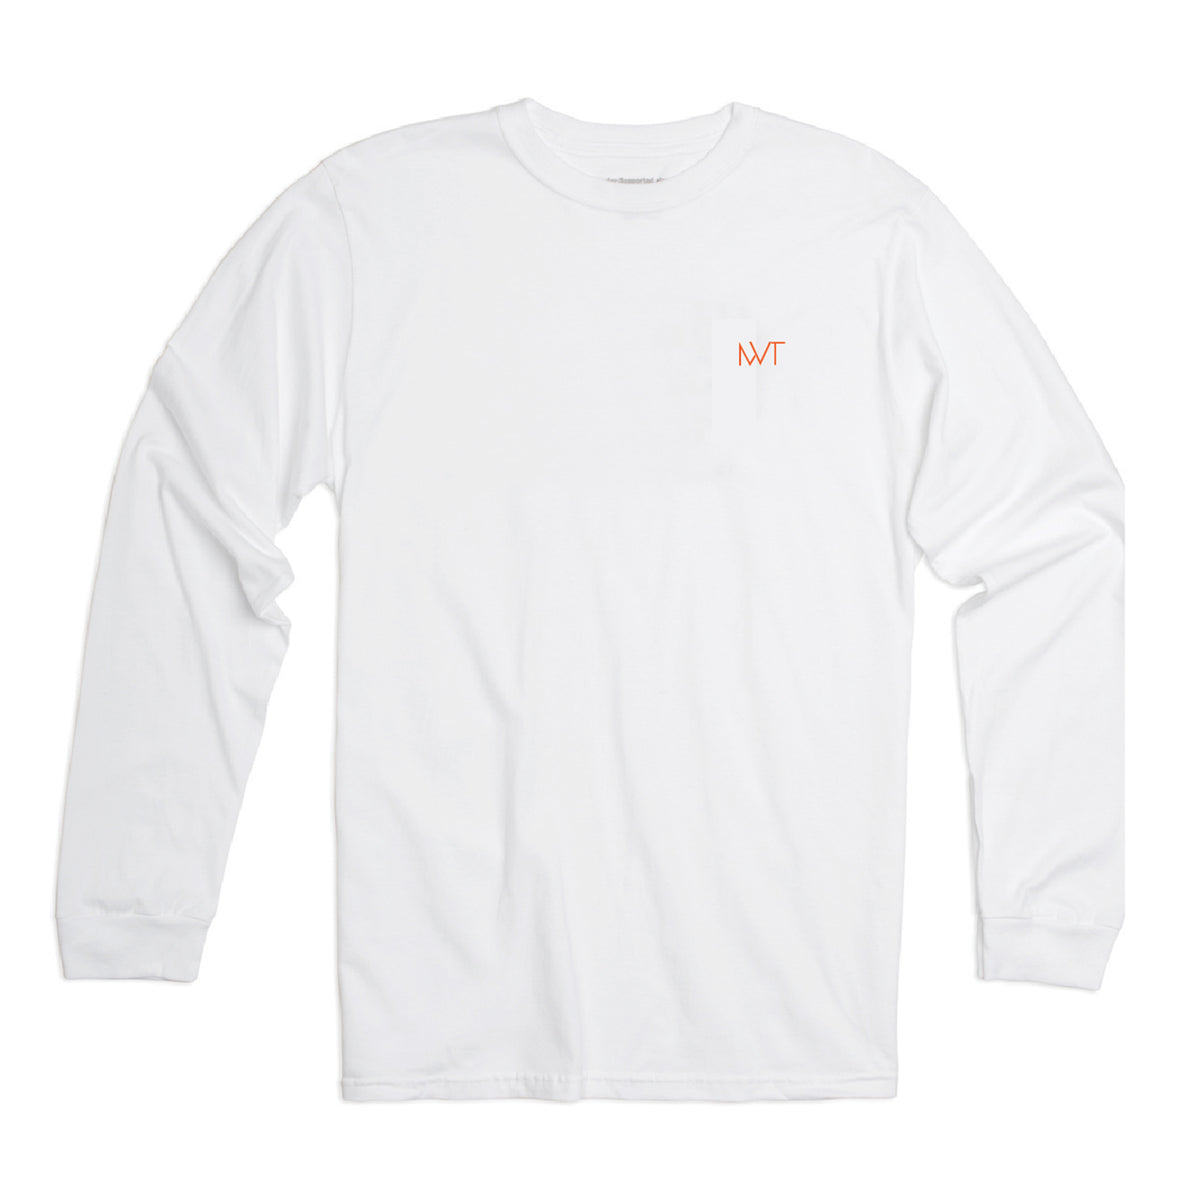 Creative Minds Long Sleeve